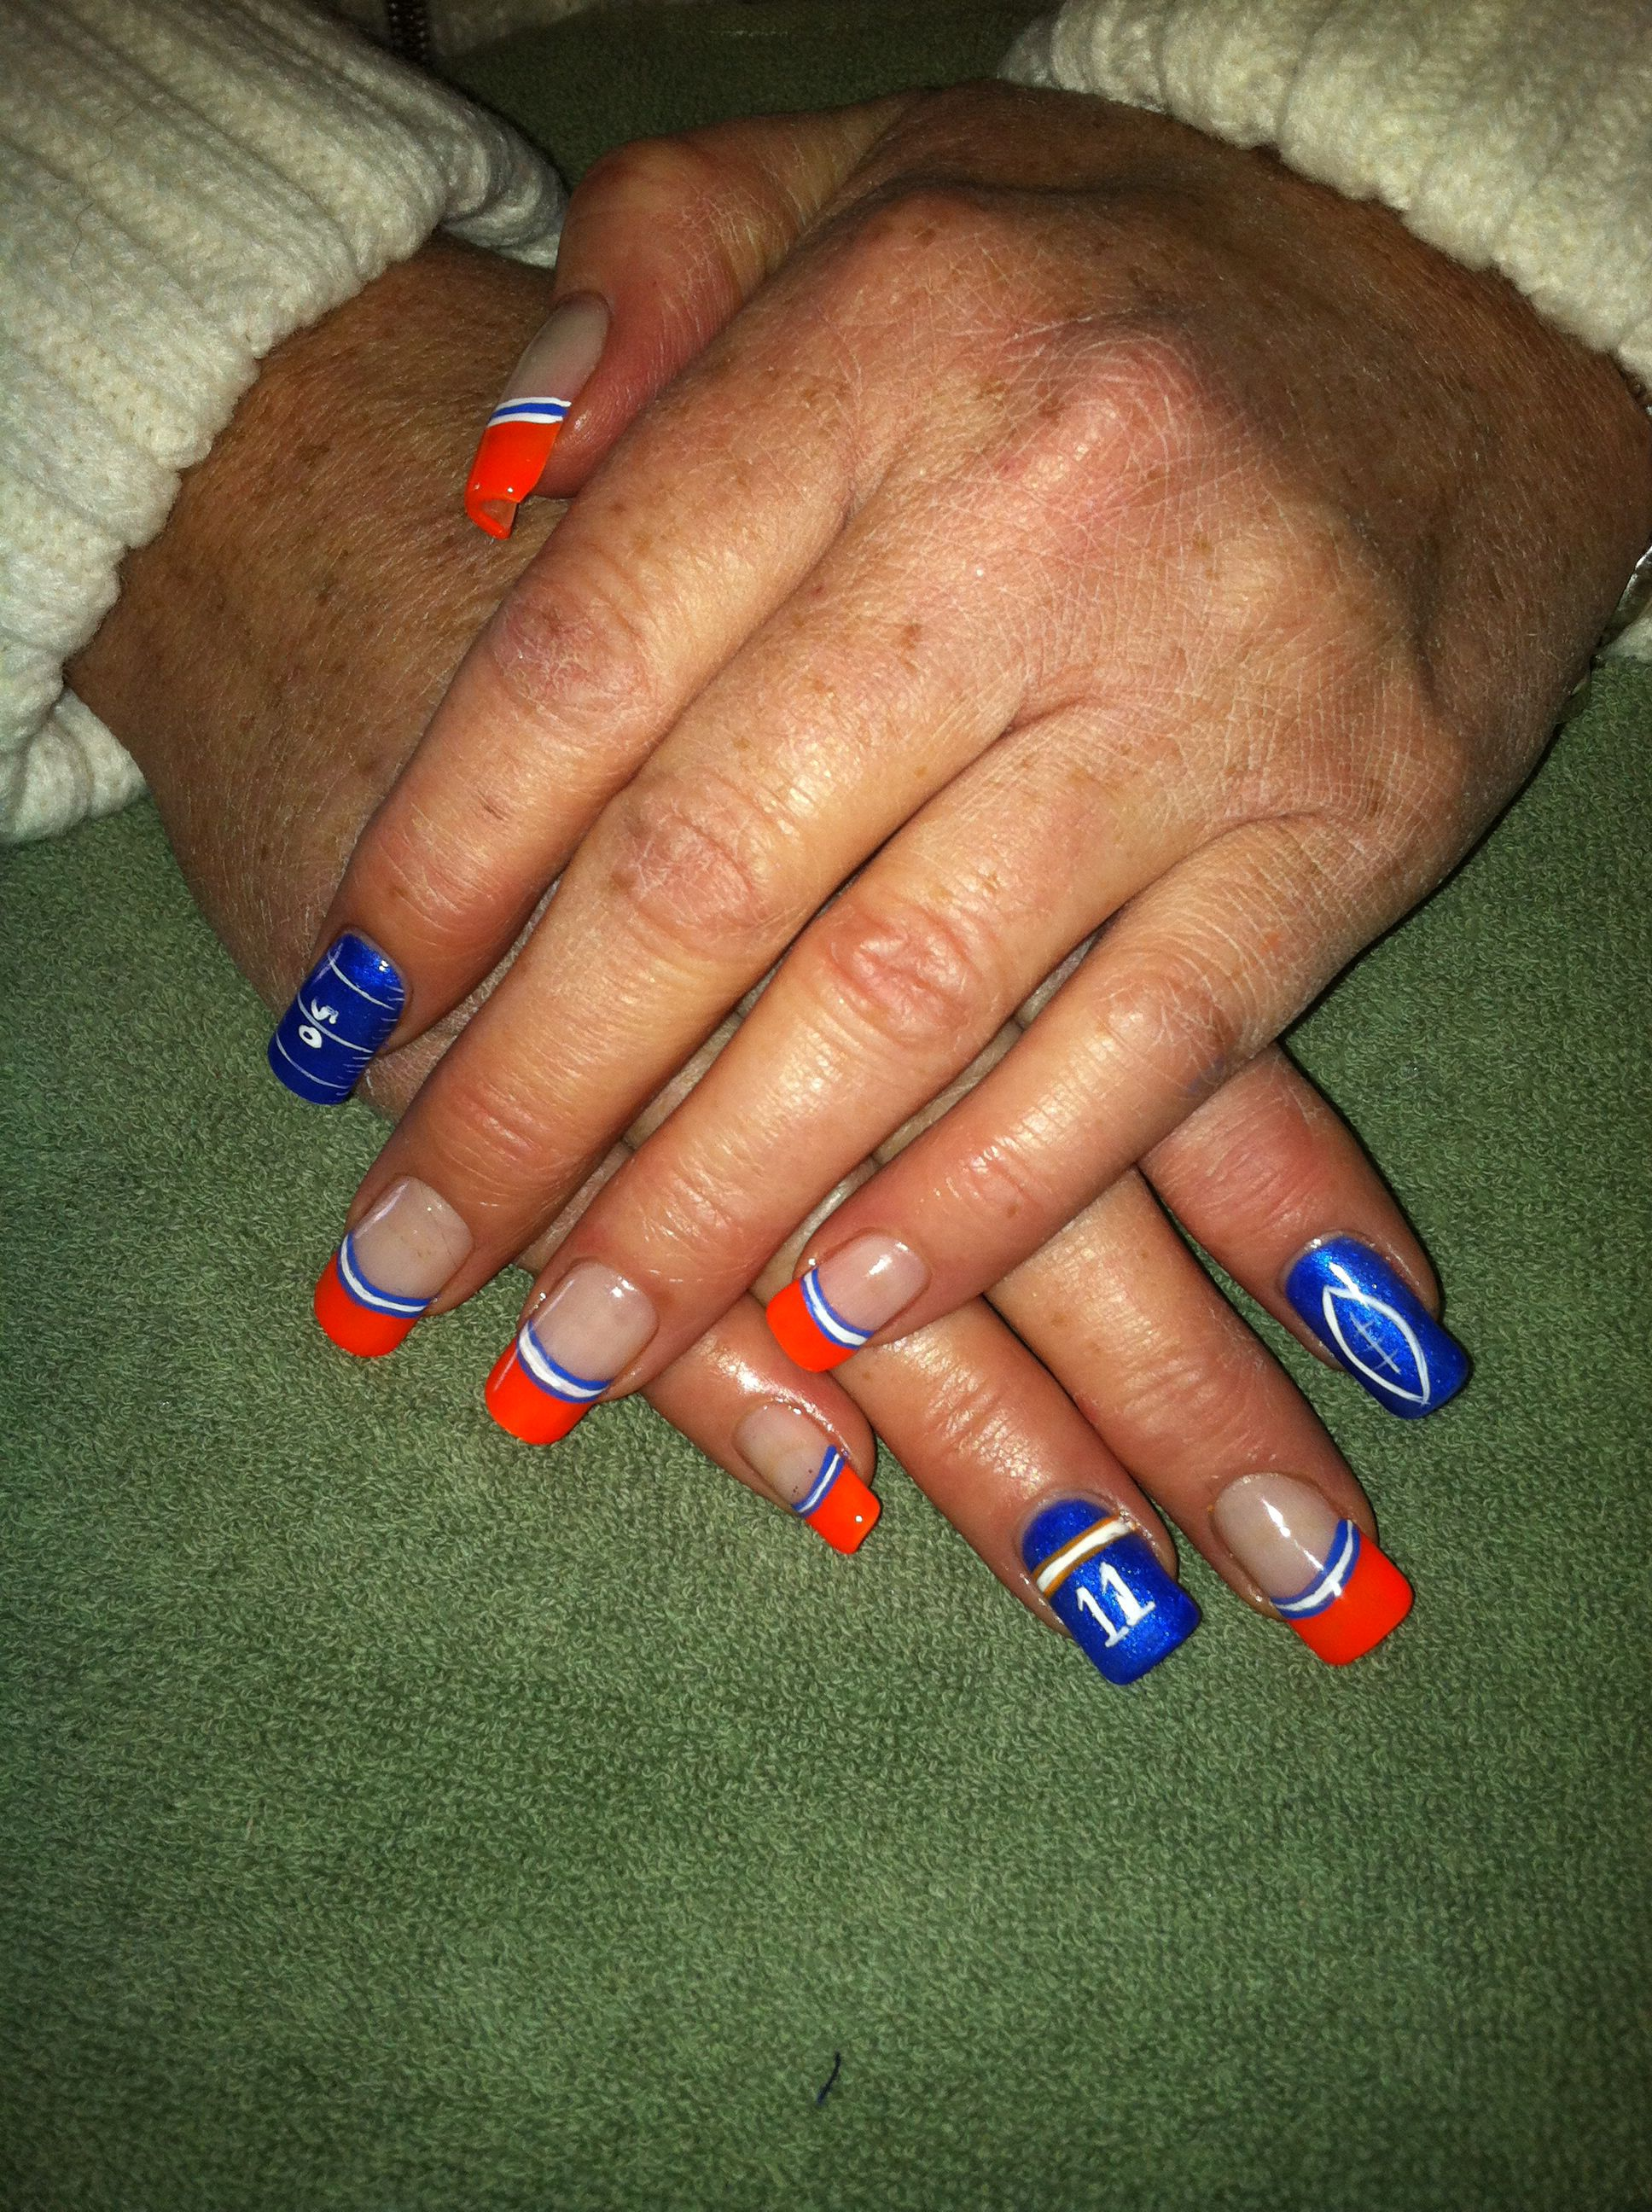 Boise State Nails   Nail Designs   Pinterest   Sports nail art and ...